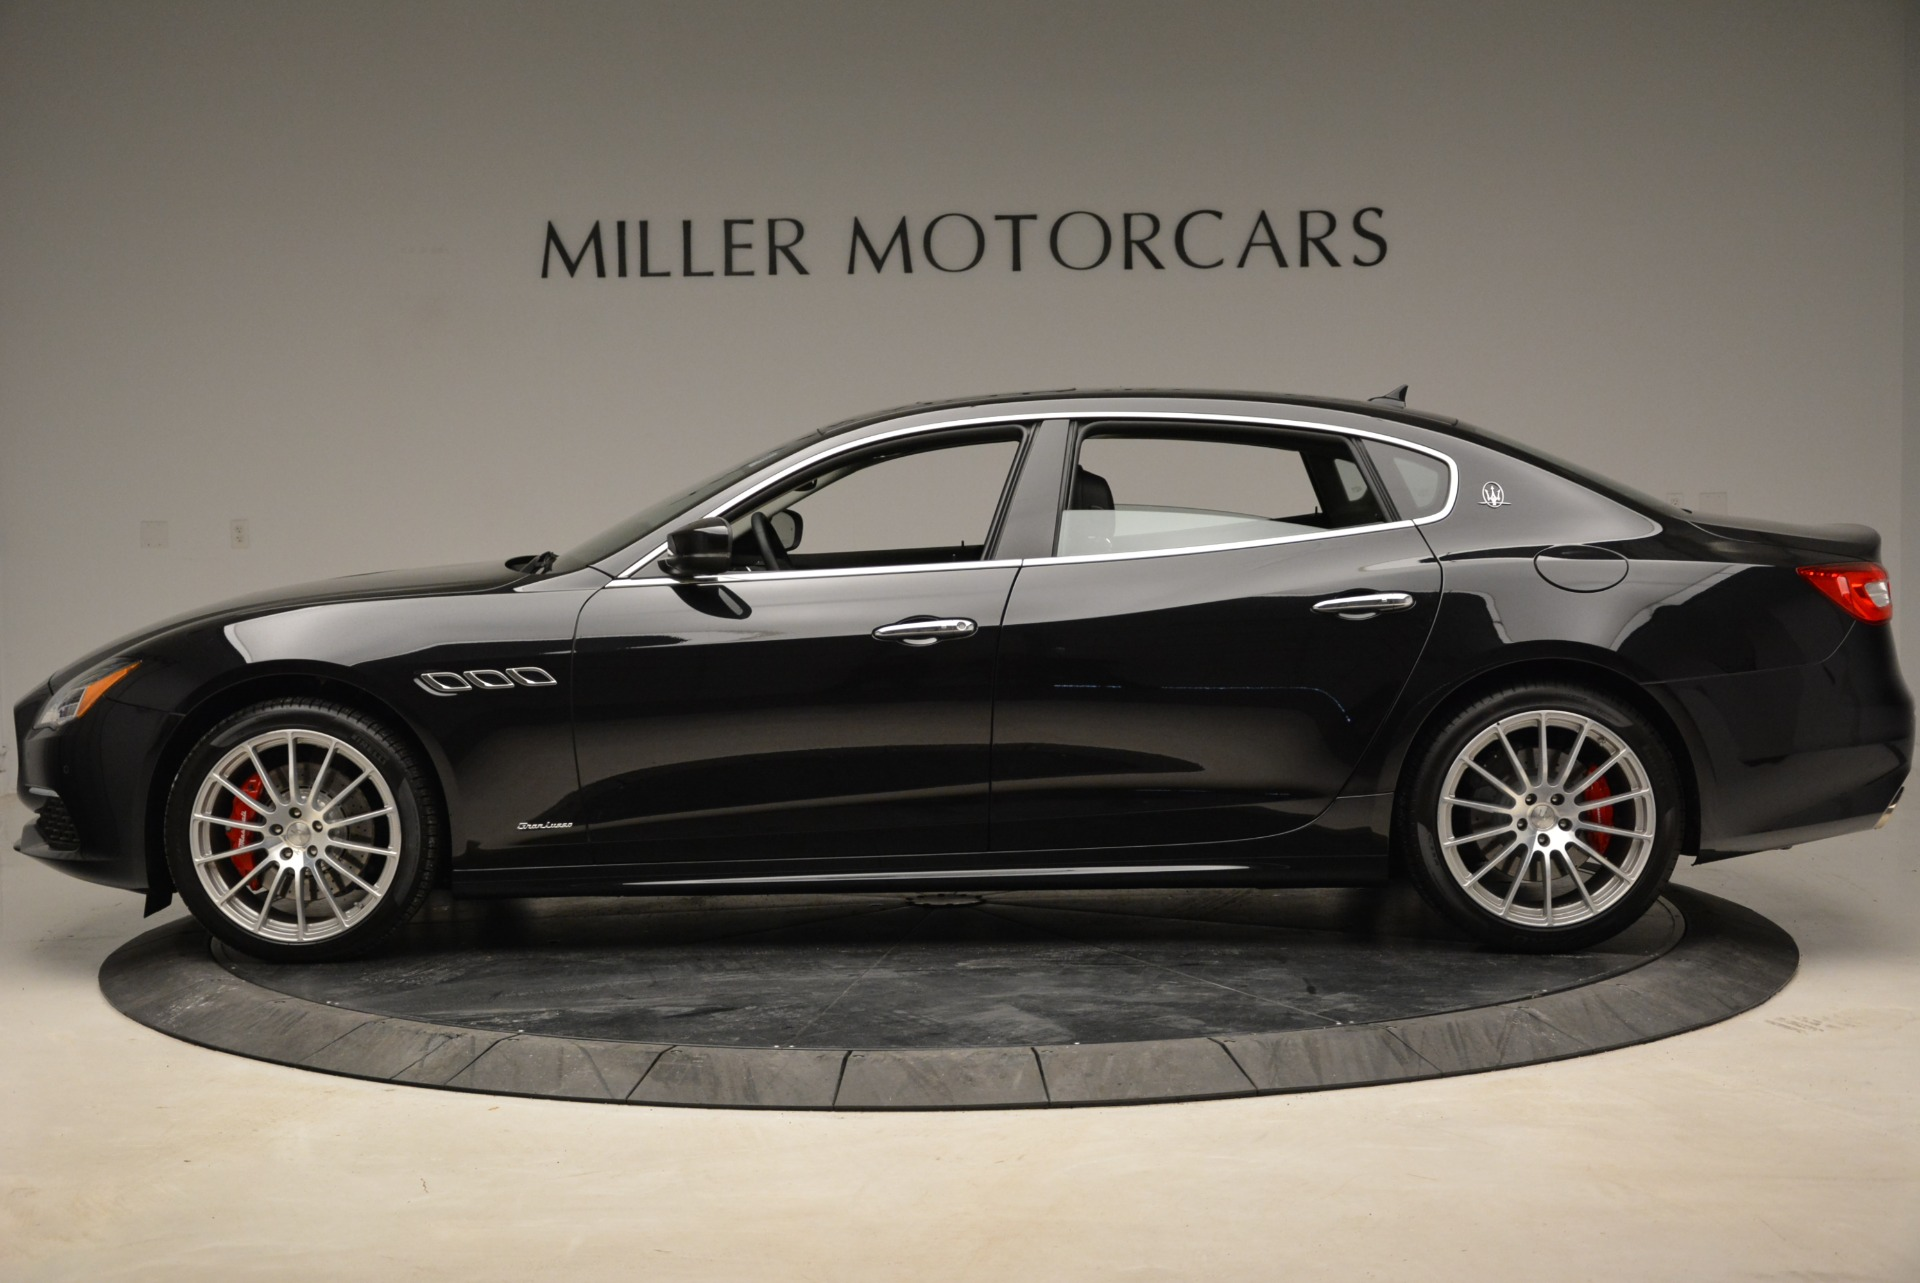 New 2018 Maserati Quattroporte S Q4 GranLusso For Sale In Greenwich, CT 1705_p3